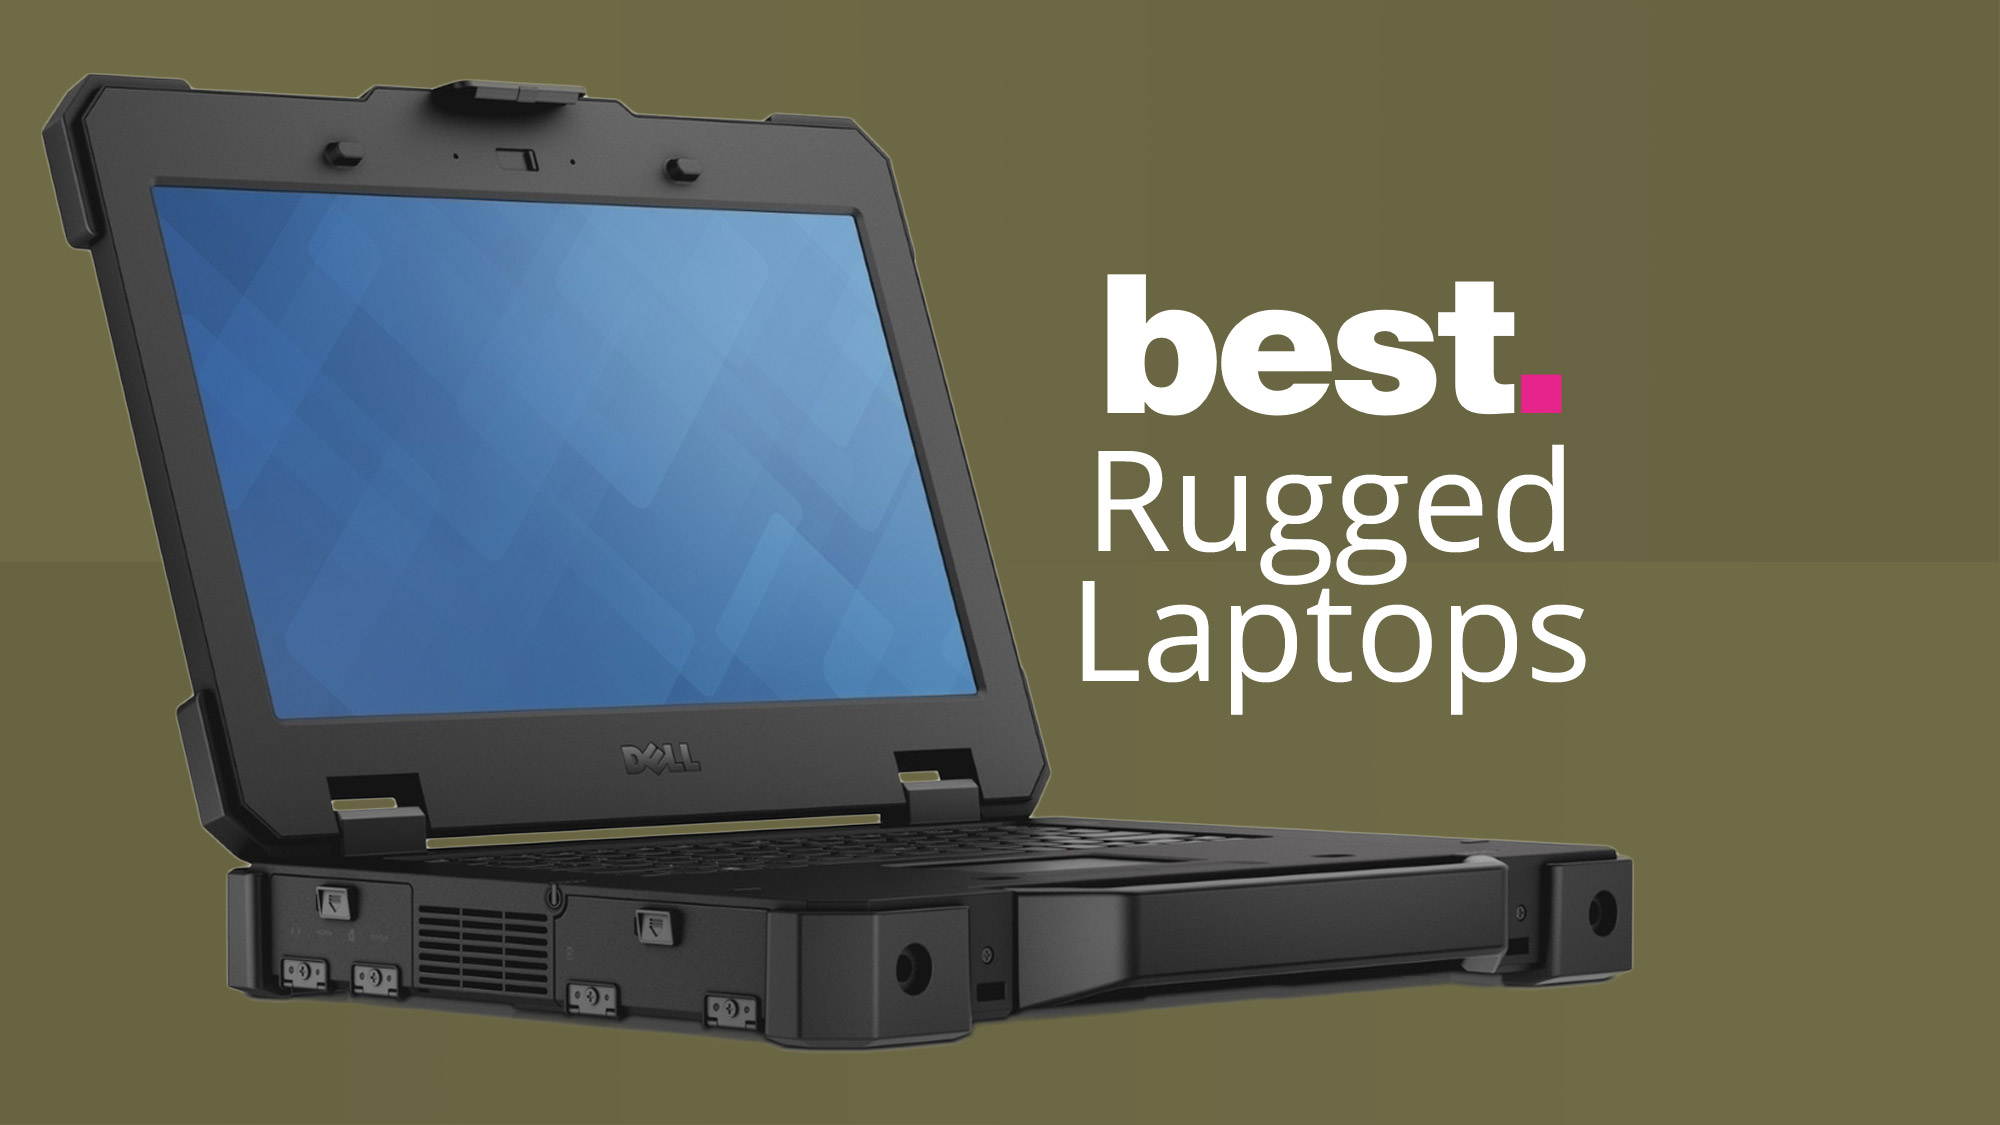 Best Rugged Laptops Of 2020 The Top Drop Proof Laptops For Working At Home Or Outdoors Techradar